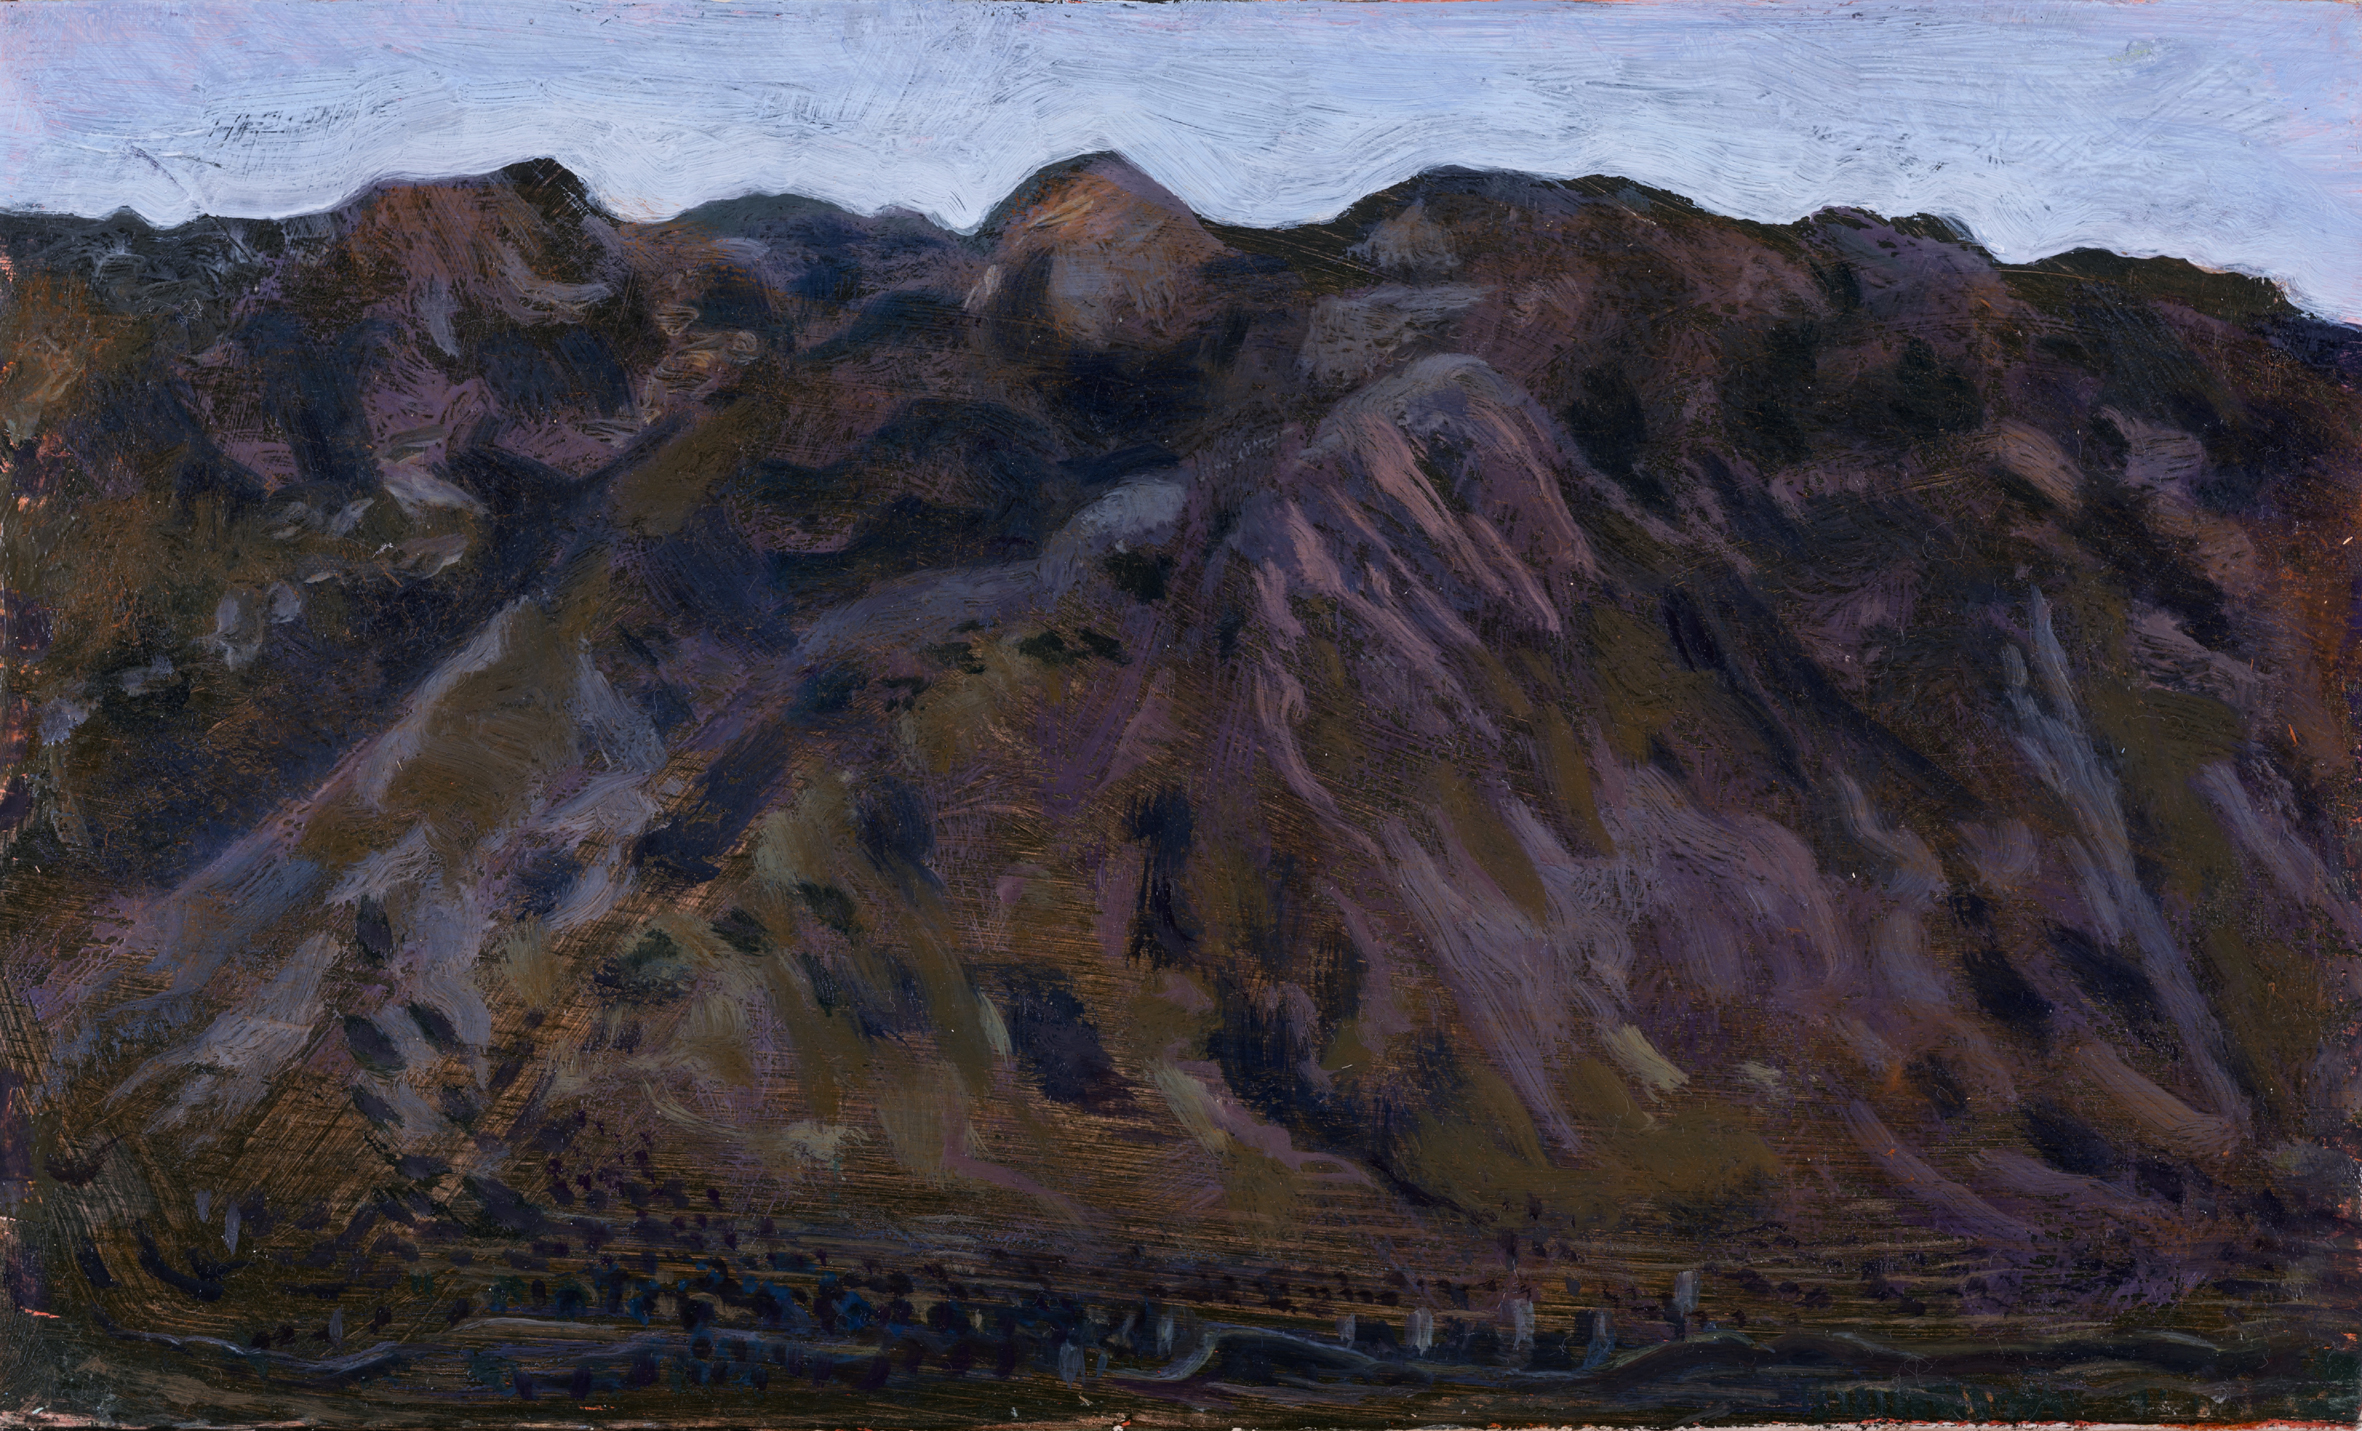 'The land of evil council: above Flomohoria' oil on board 15.5 x 25.5cm